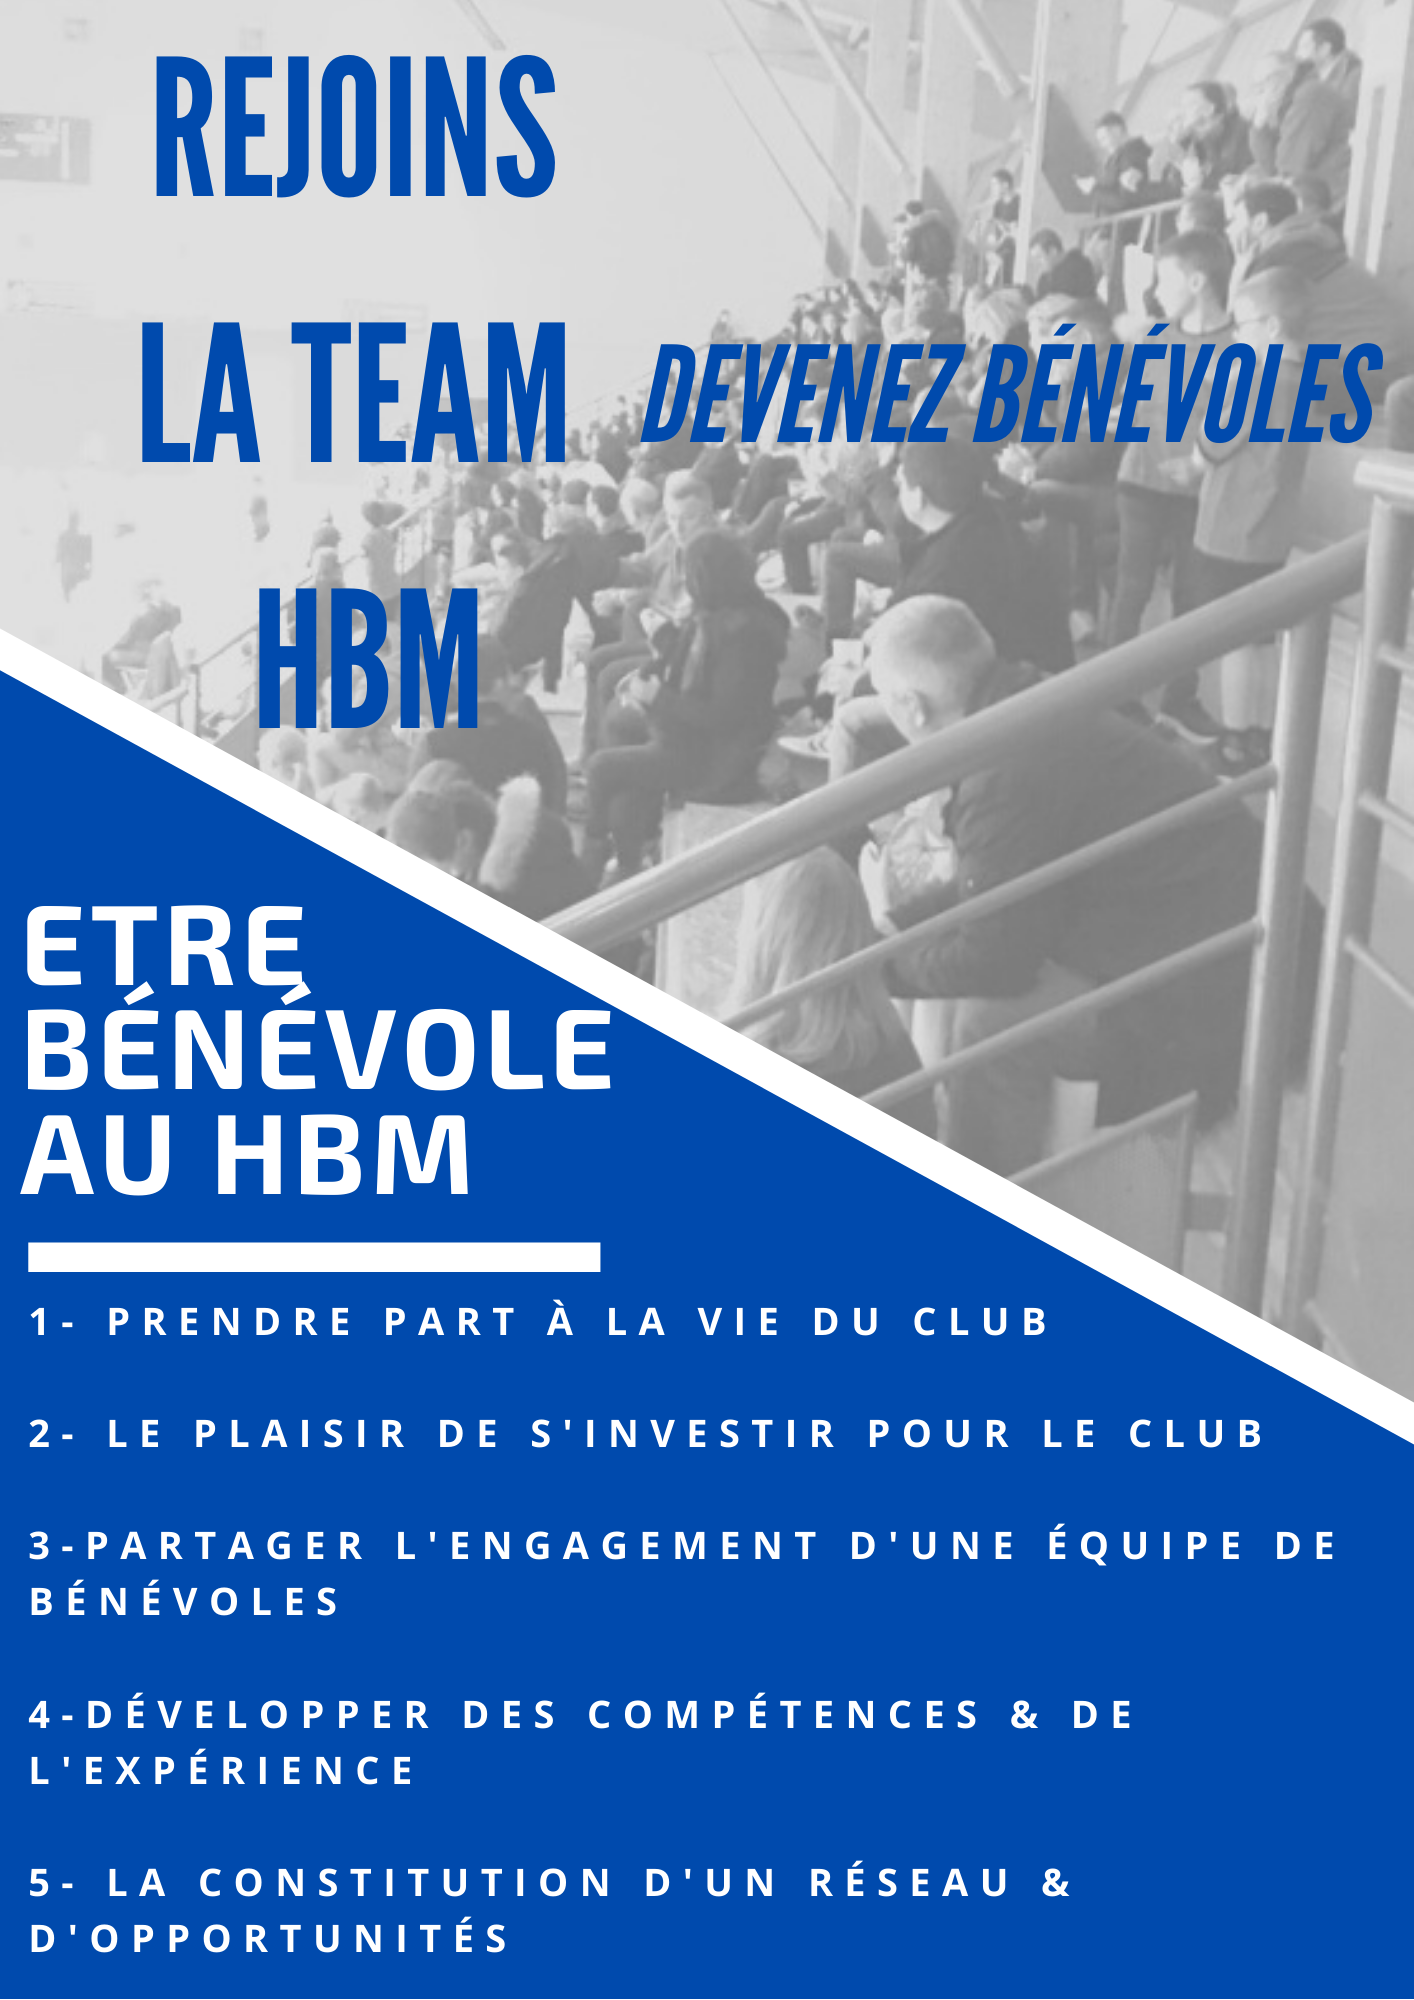 REJOINS%20LA%20TEAM%20HBM.png